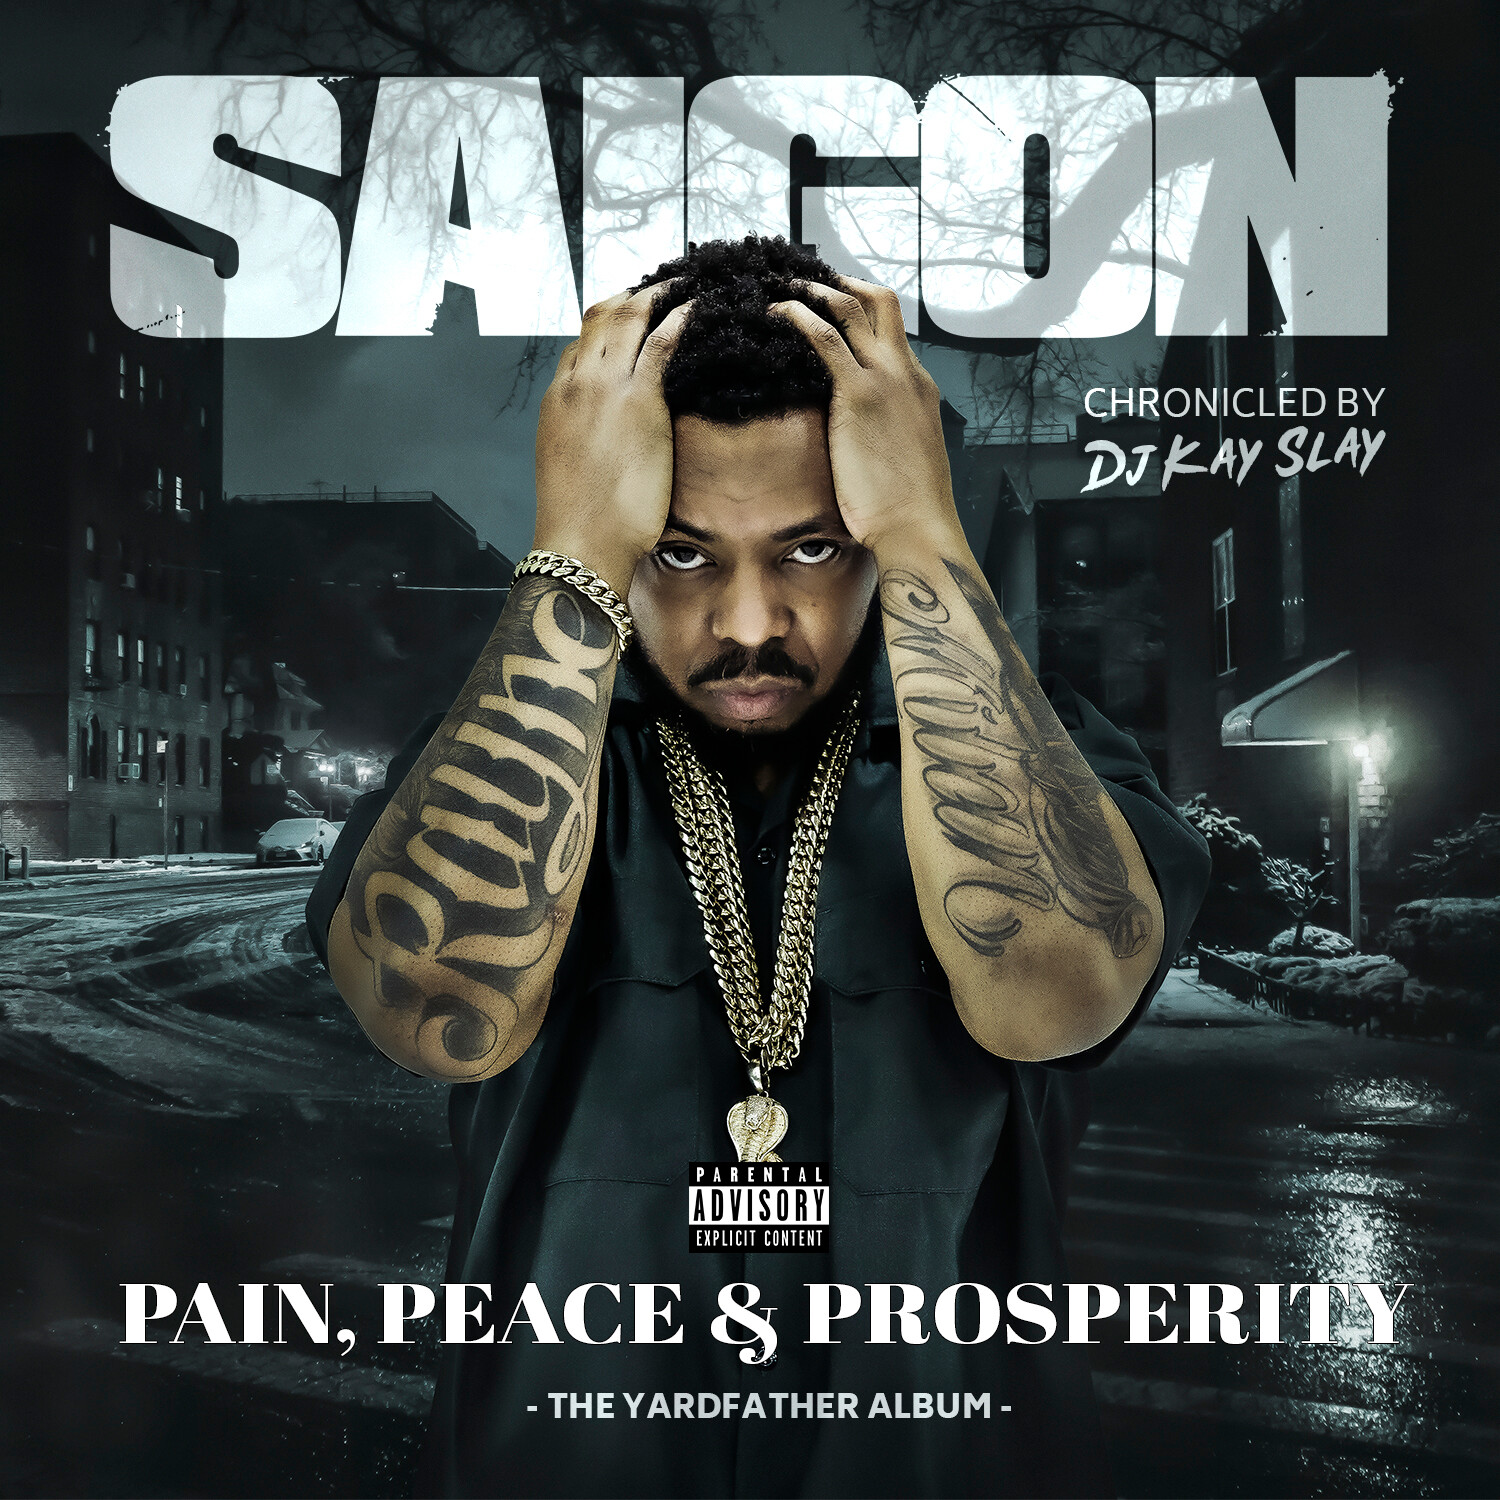 PainPeace Prosperity